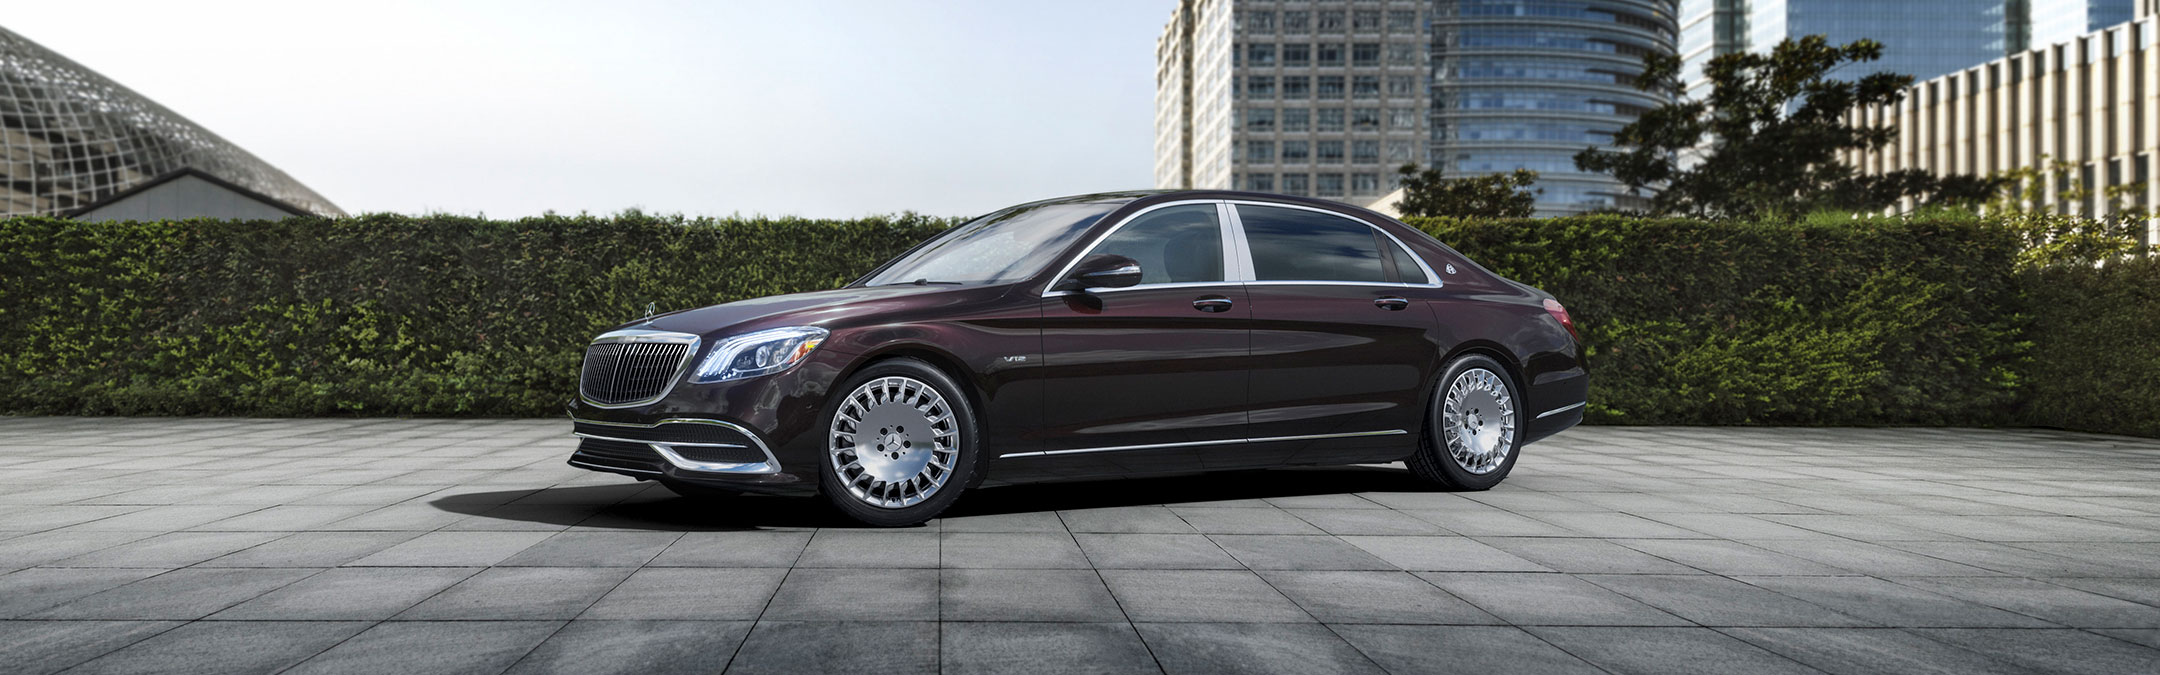 Mercedes_Maybach Burgundy Exterior Photo